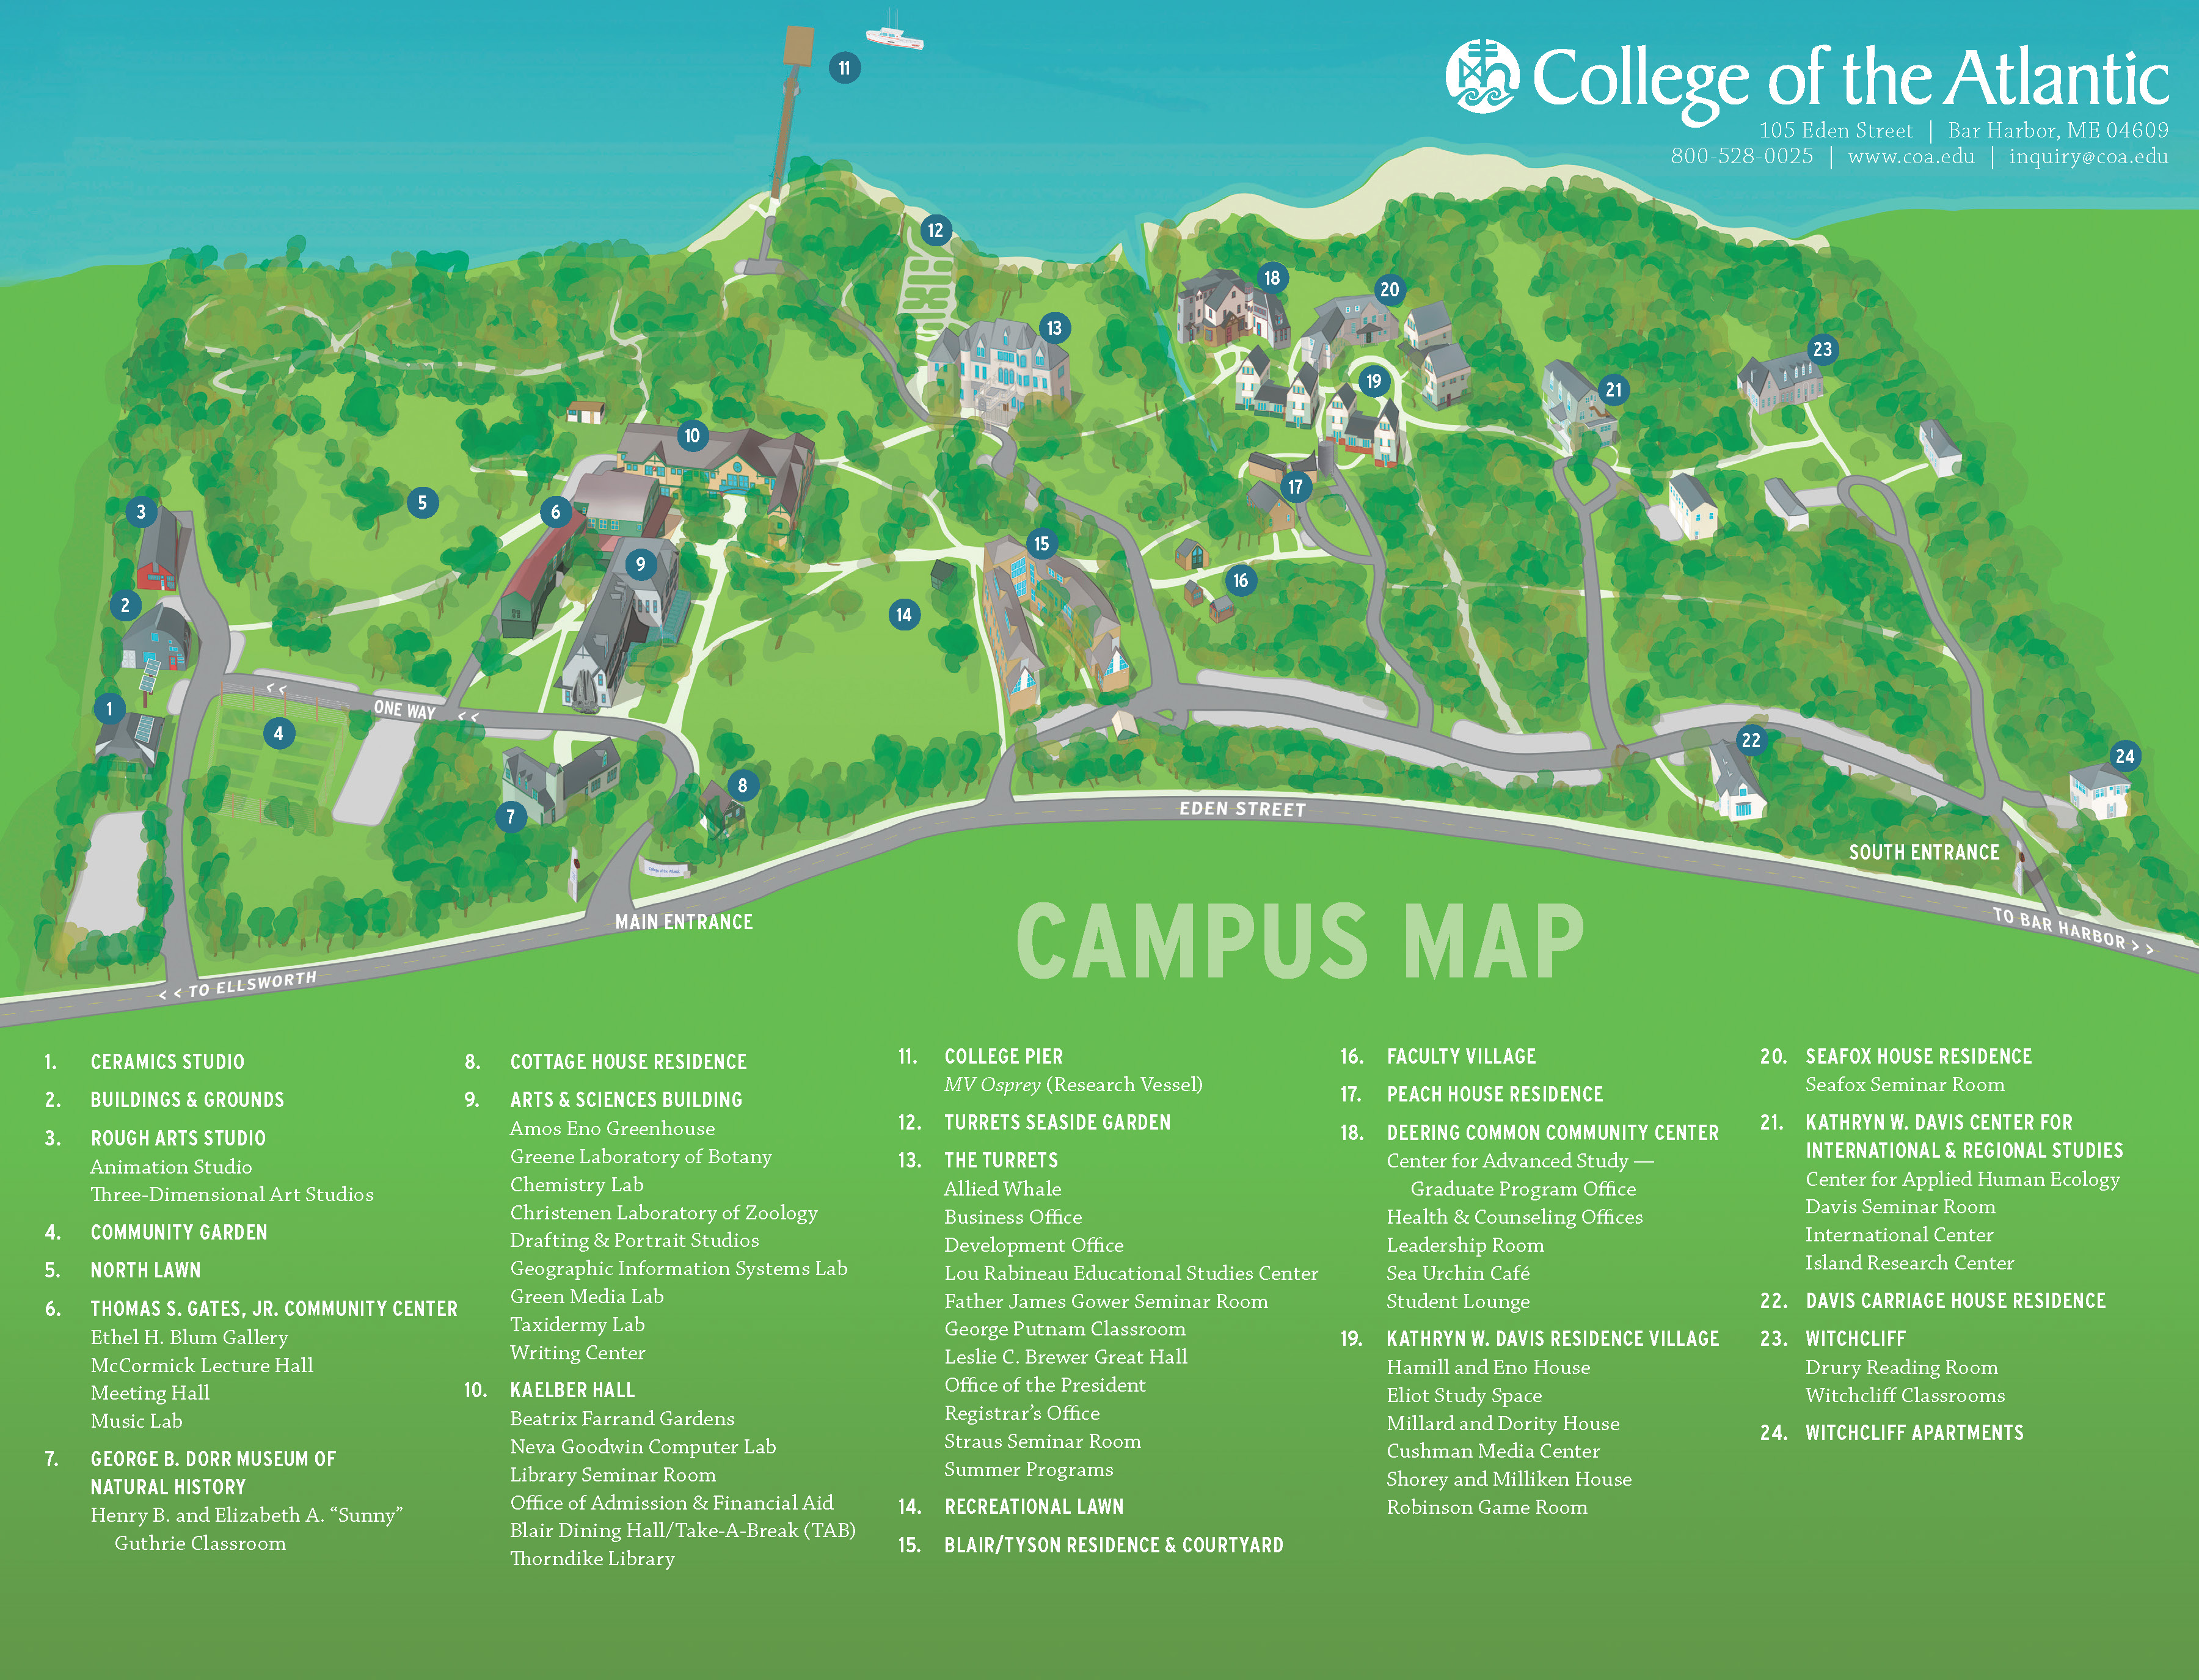 Coa Campus Map.Coa Campus Map Illustration Porcupine Design